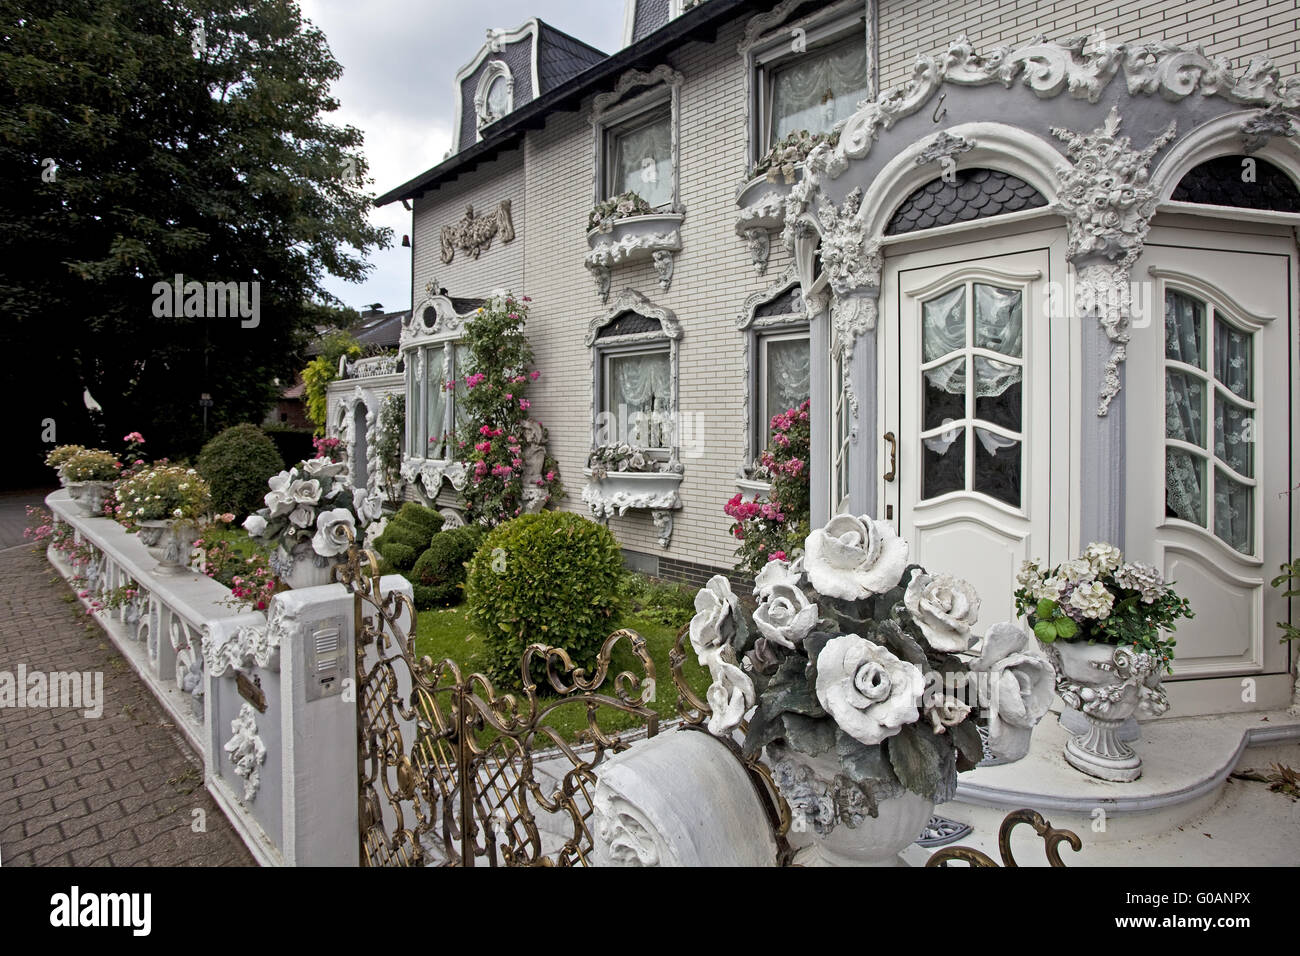 Architectural style Gelsenkirchen Baroque, Germany - Stock Image